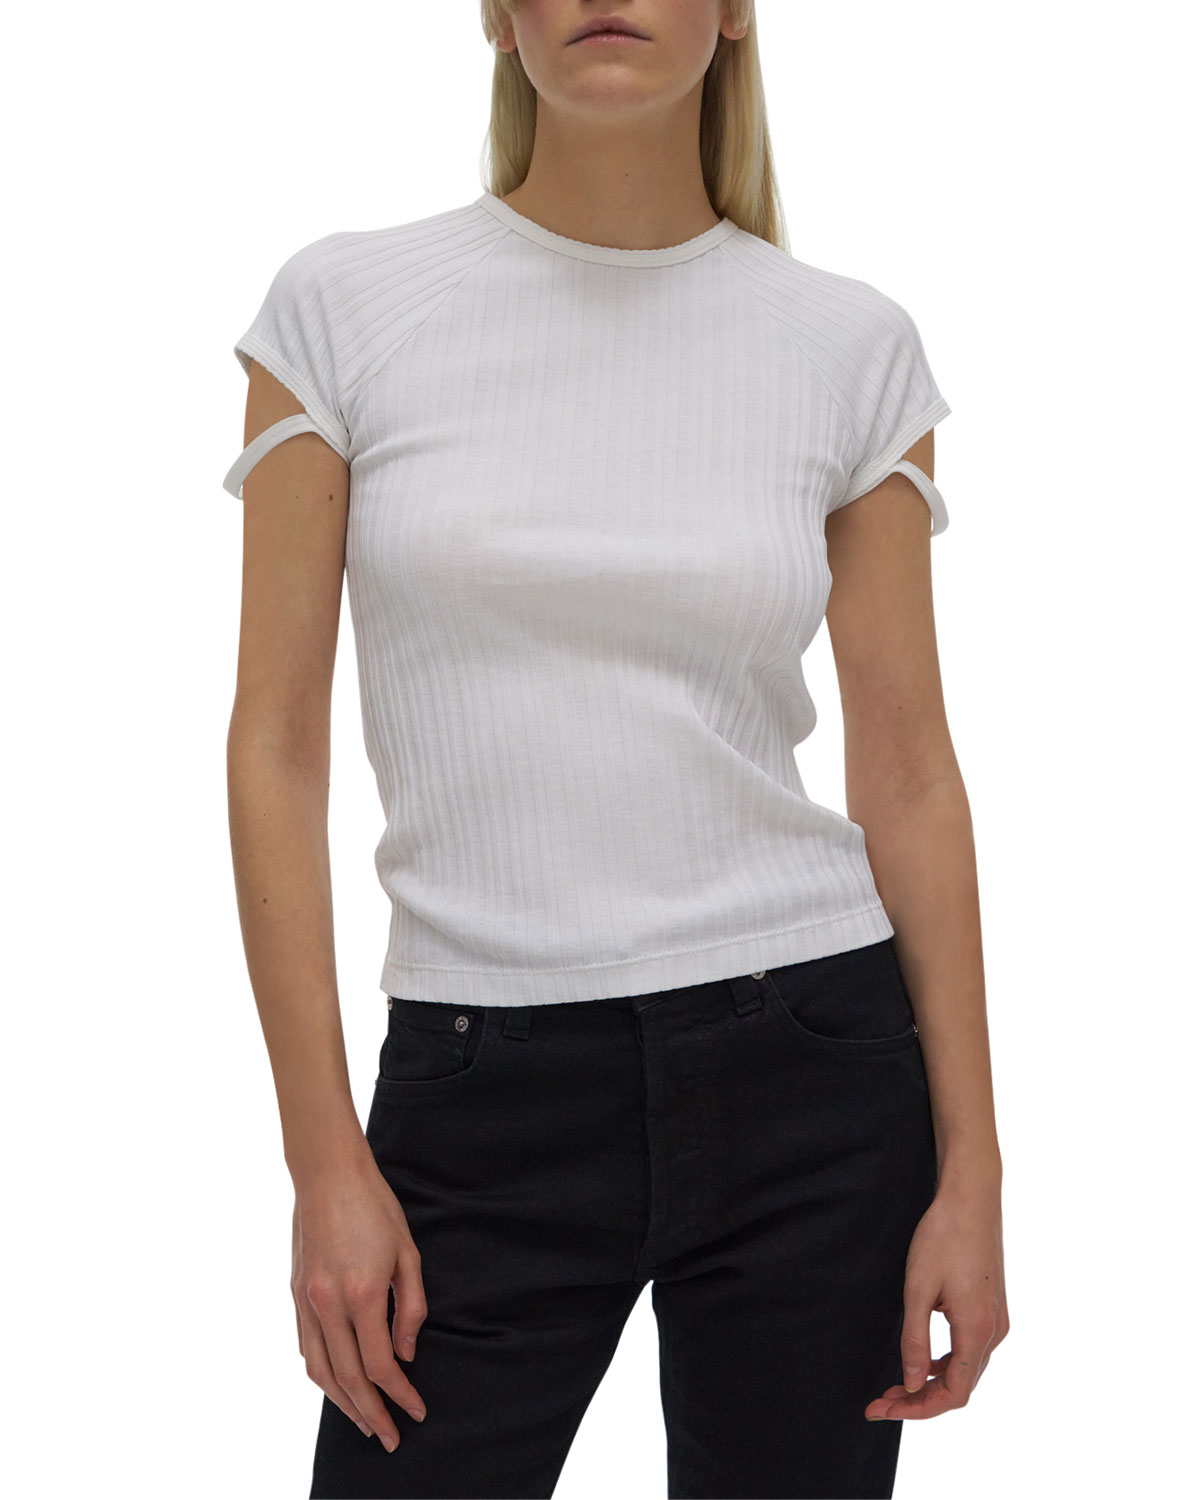 Little Rib Tee with Straps